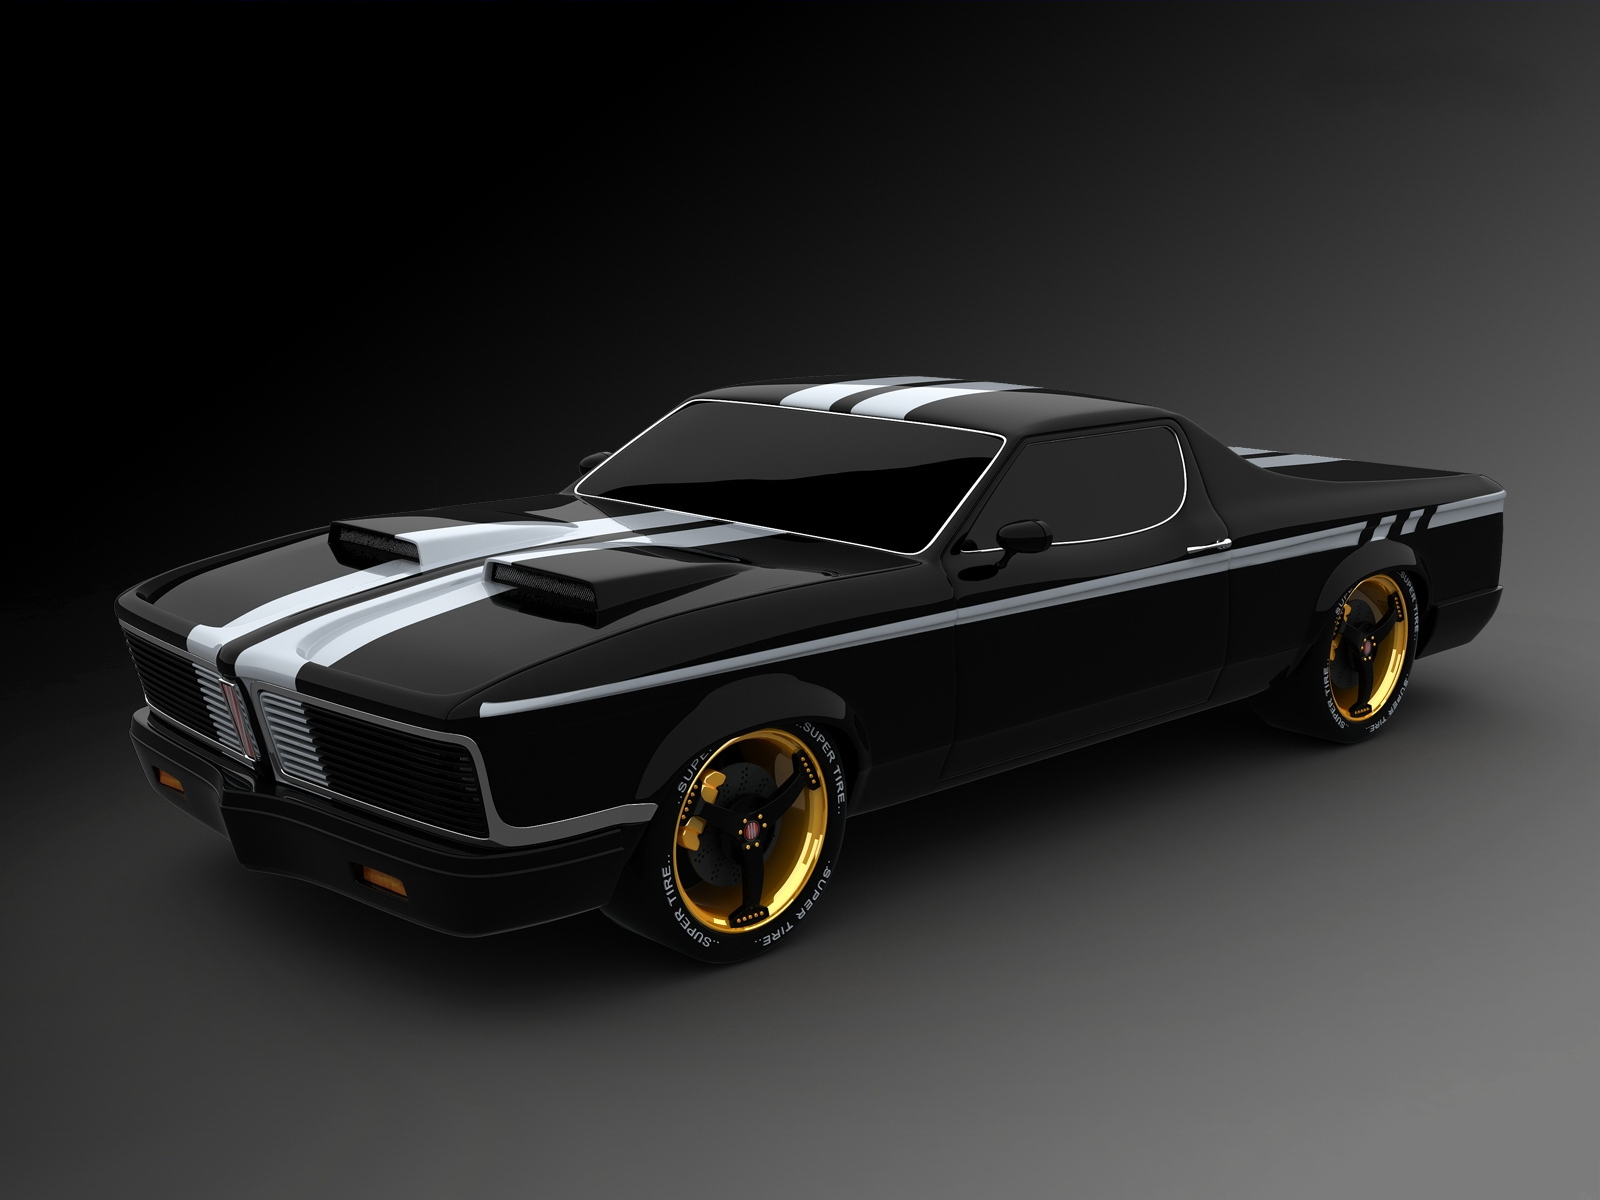 Related Pictures cool muscle cars wallpaper 1600x1200